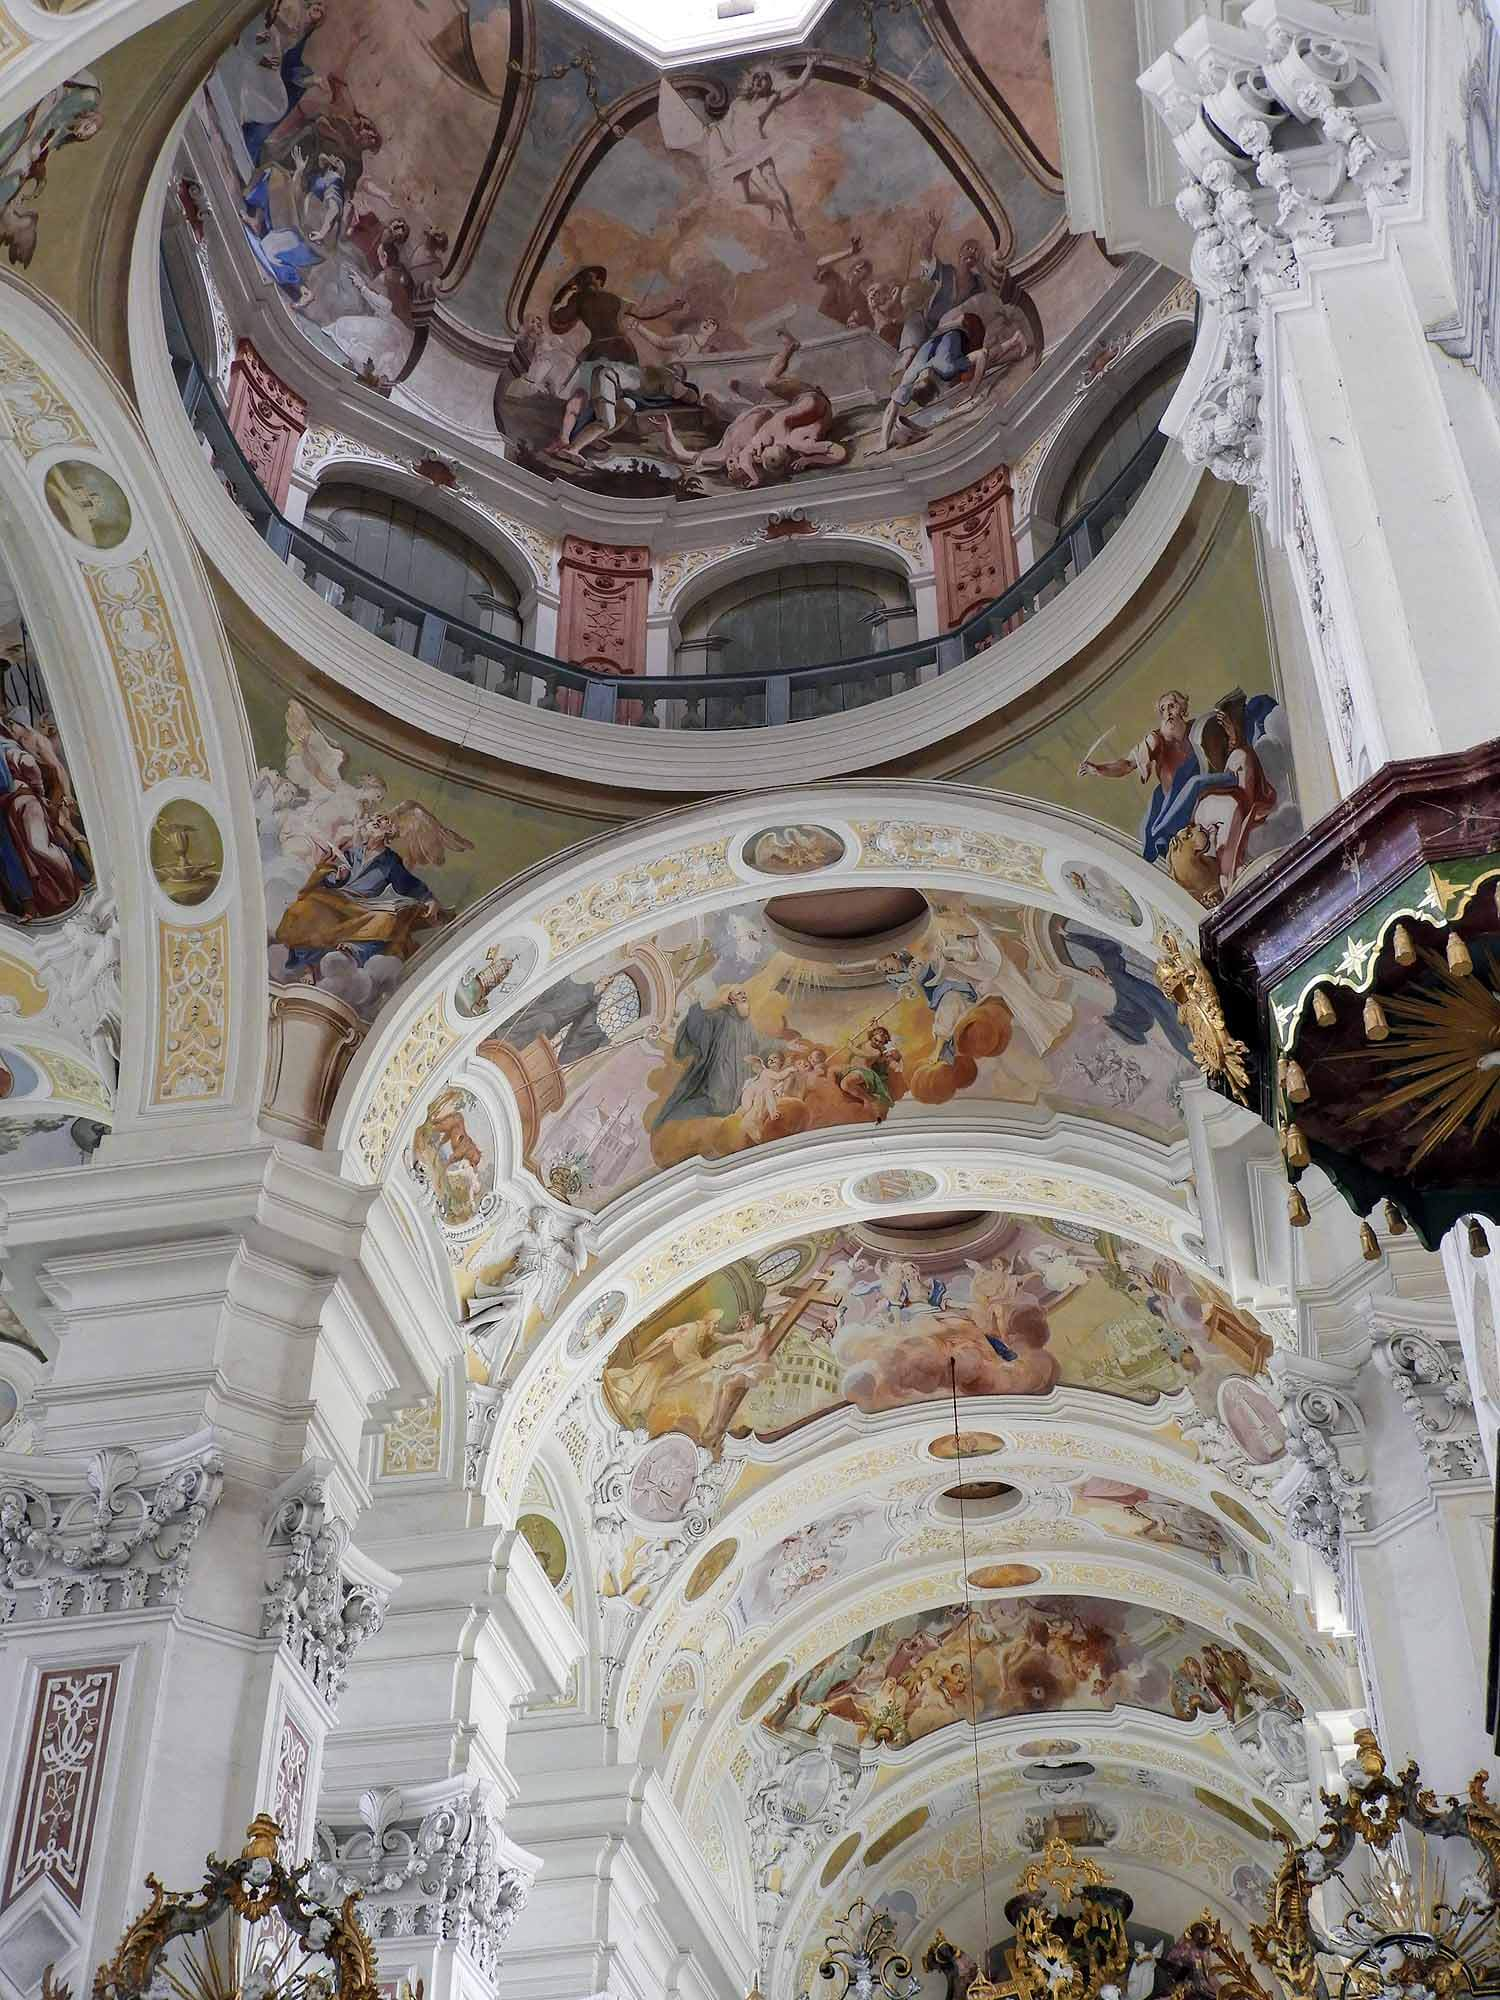 germany-kloster-schontal-chaple-ceiling-painting-baroque.jpg